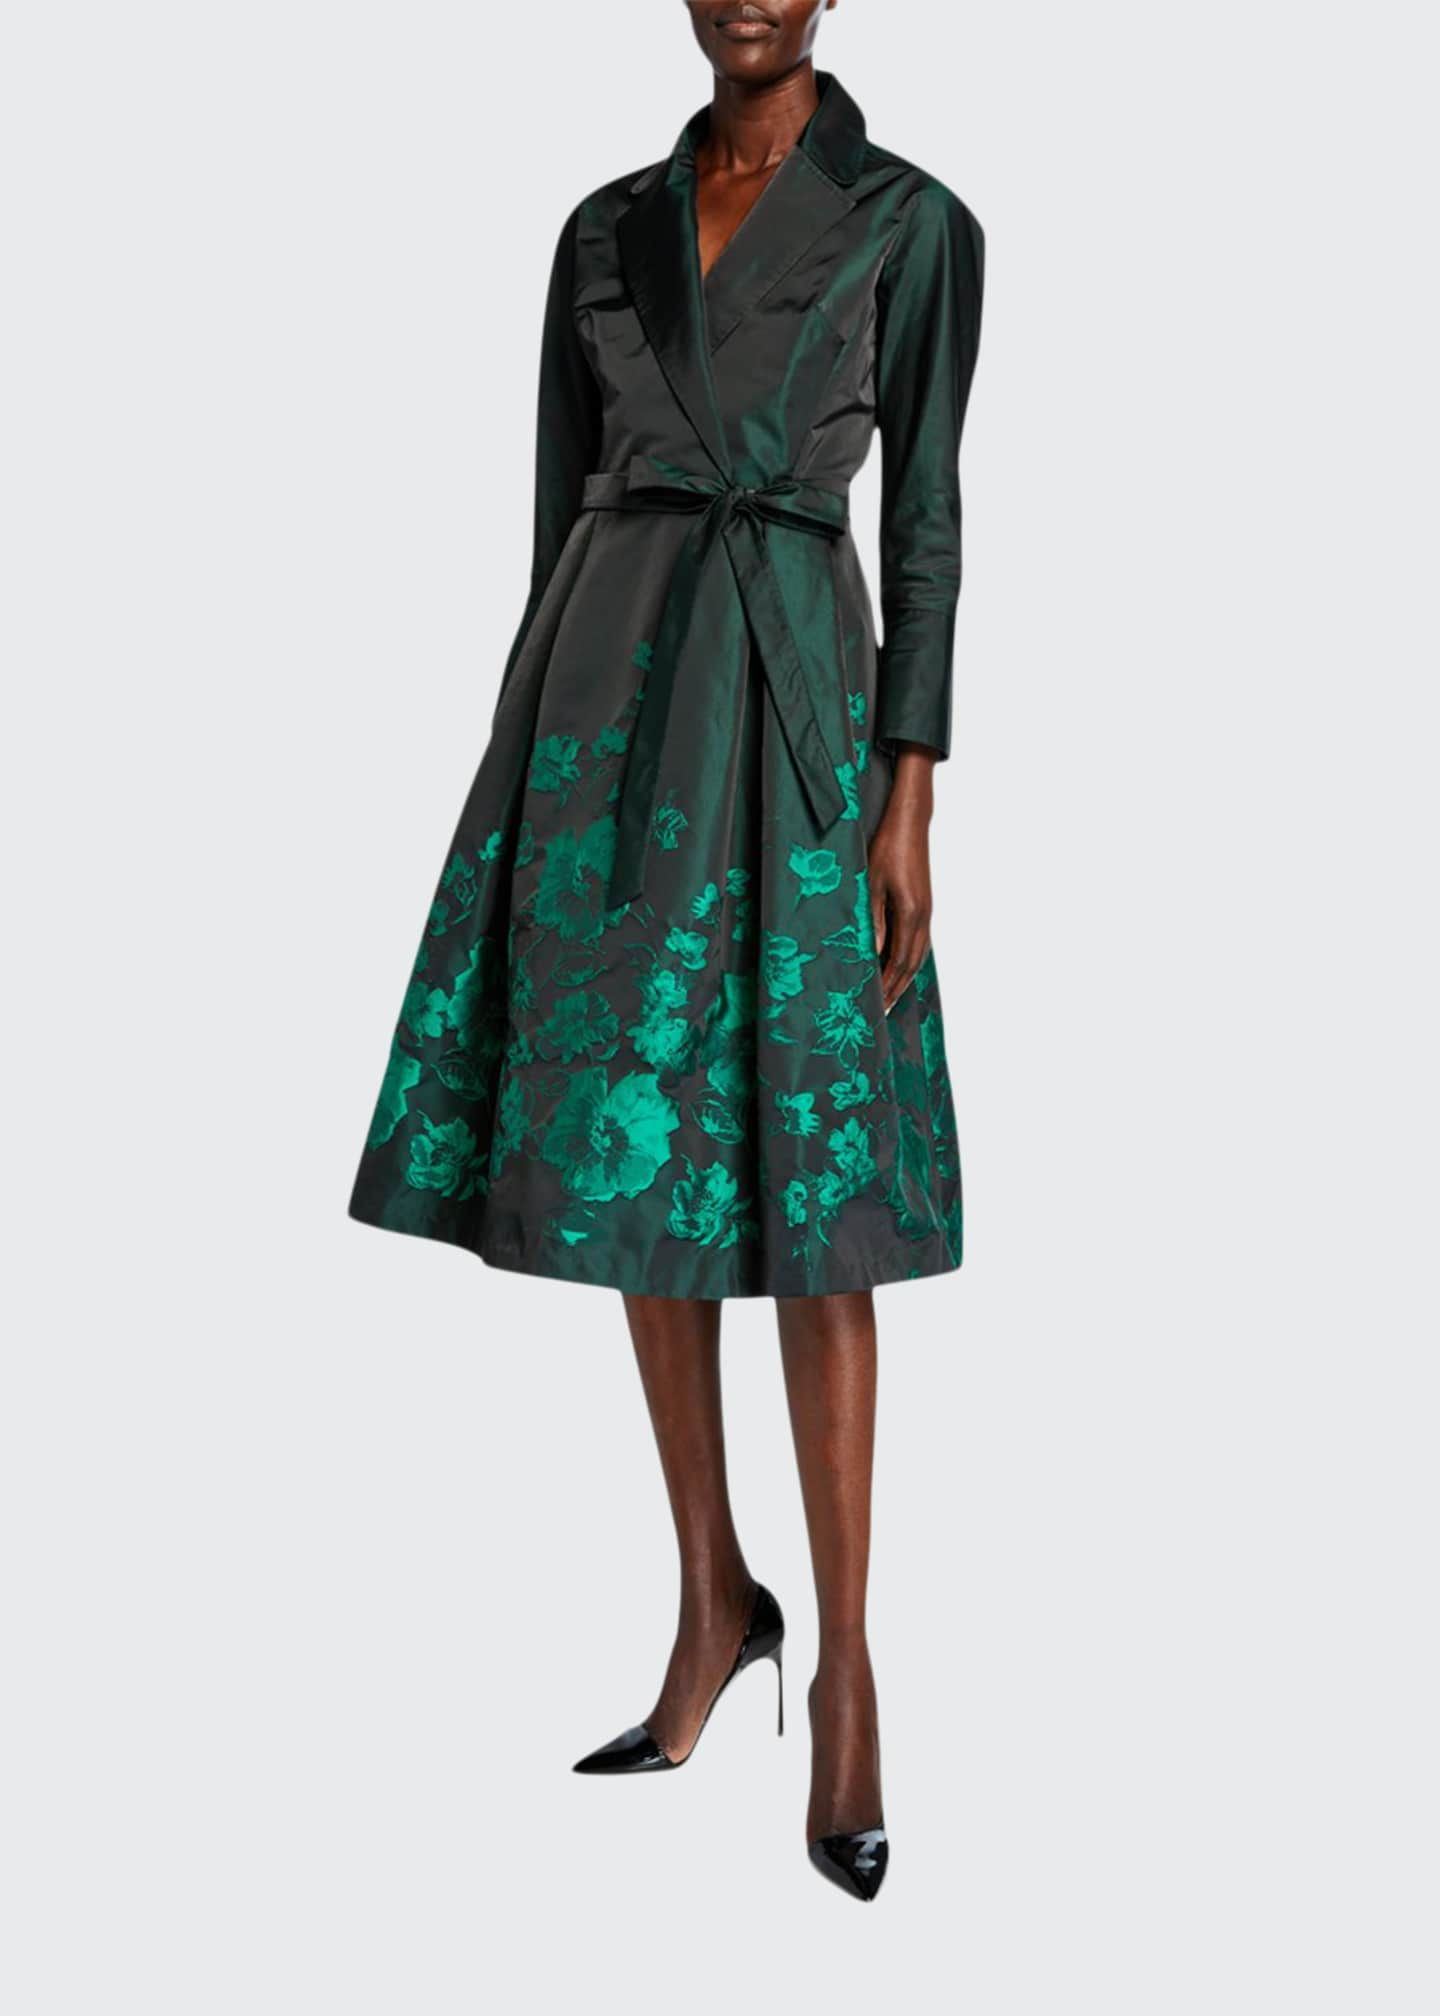 Rickie Freeman for Teri Jon Bracelet-Sleeve Taffeta Shirtdress